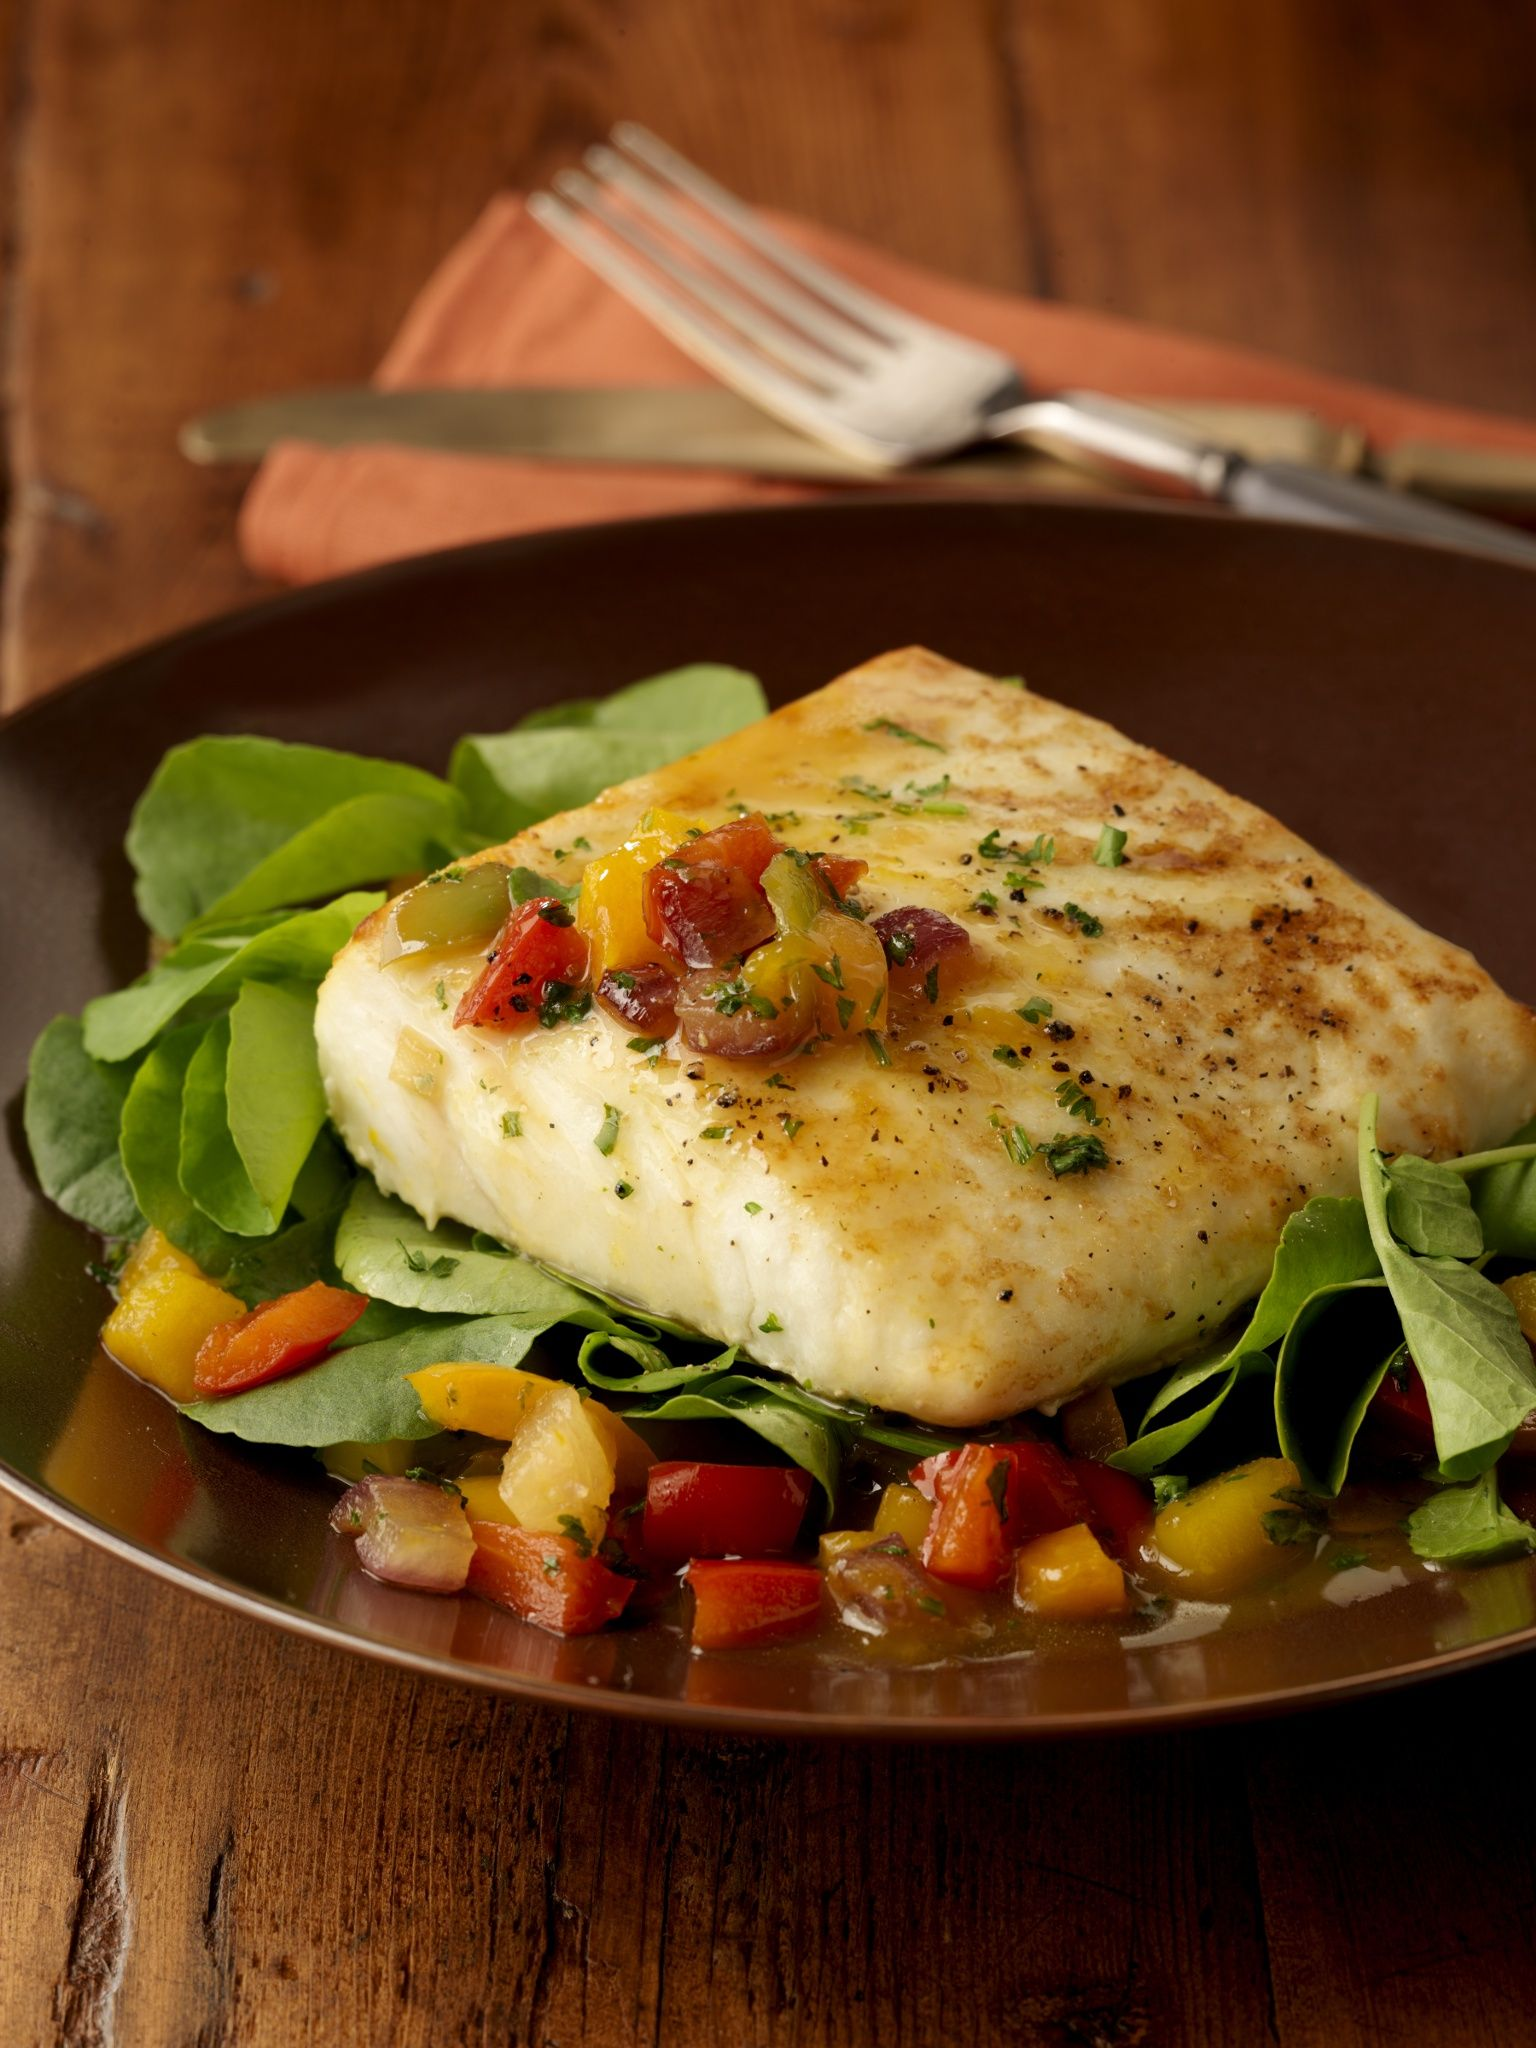 Baked Halibut Served With Green Salad By Gable Denims On 500px  ~ Cenas Ligeras Para Bajar De Peso